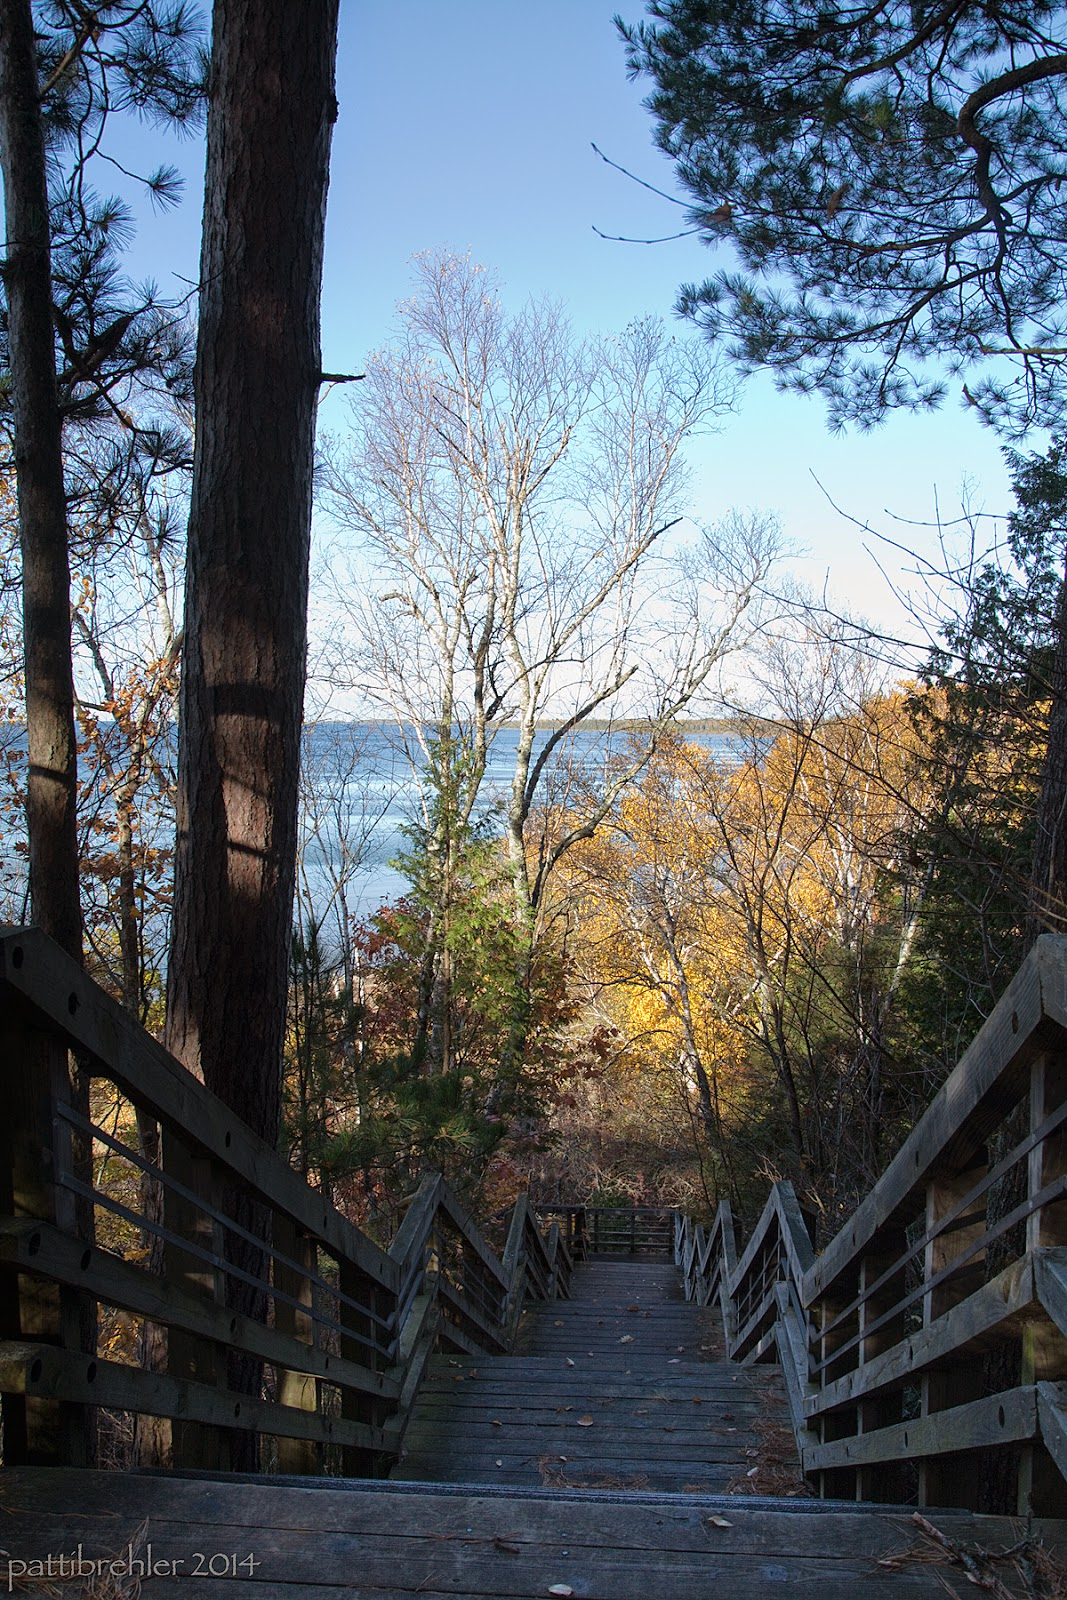 A shot from the top of a long staircase going down through the woods to the edge of Lake Michigan. The stairs have wooden railings and landings, but the steps are open metal grates. There are two tree trunks on the left side, trees on both sides, in the distance beyond the stairs the trees are bright yellow, and one has lost it's leaves. The blue water is just visible beyond the trees.